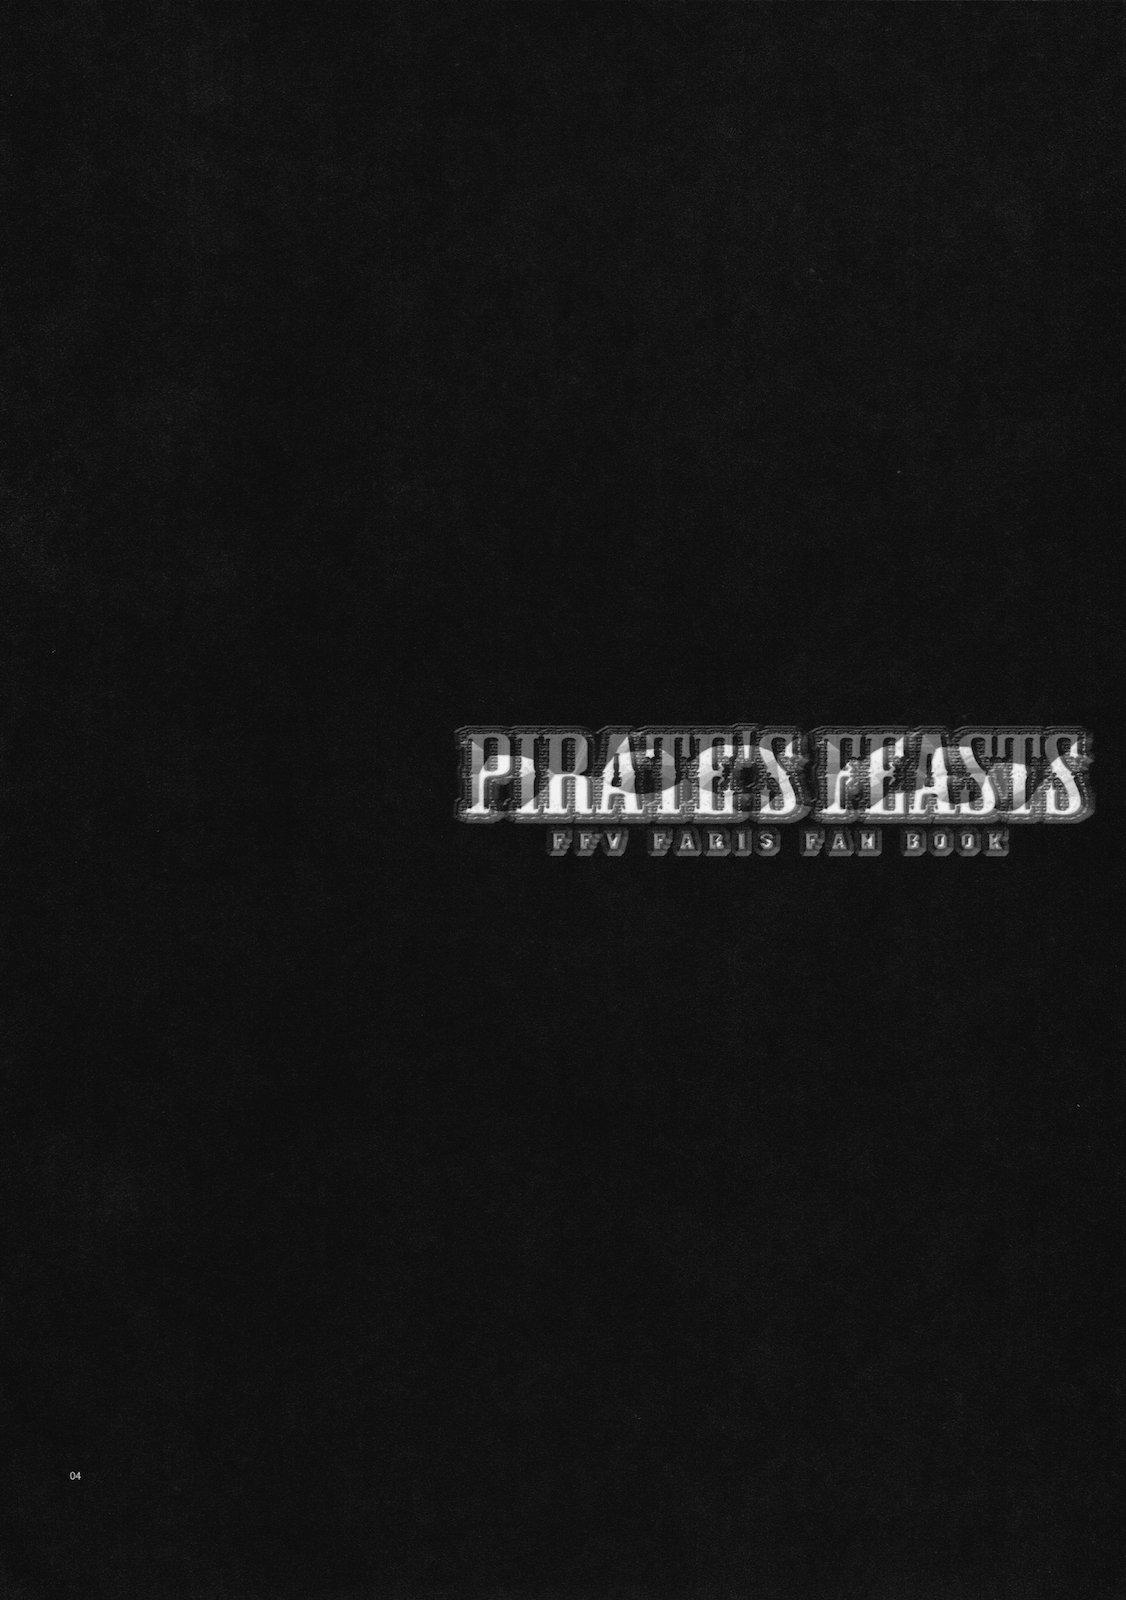 PIRATE'S FEASTS 2